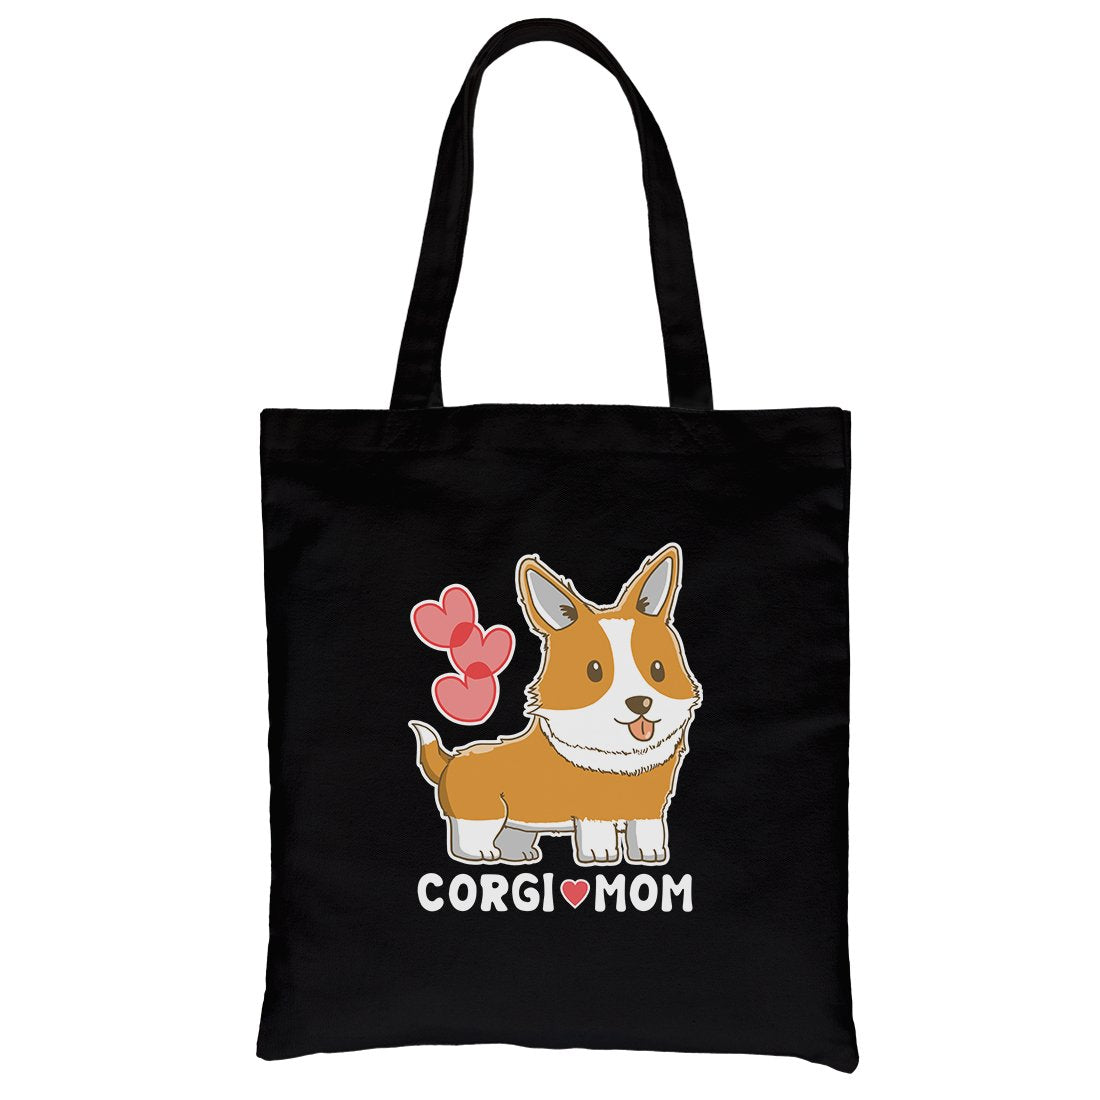 Corgi Mom Canvas Shoulder Bag Cute Gift For Corgi Owners Tote Bag